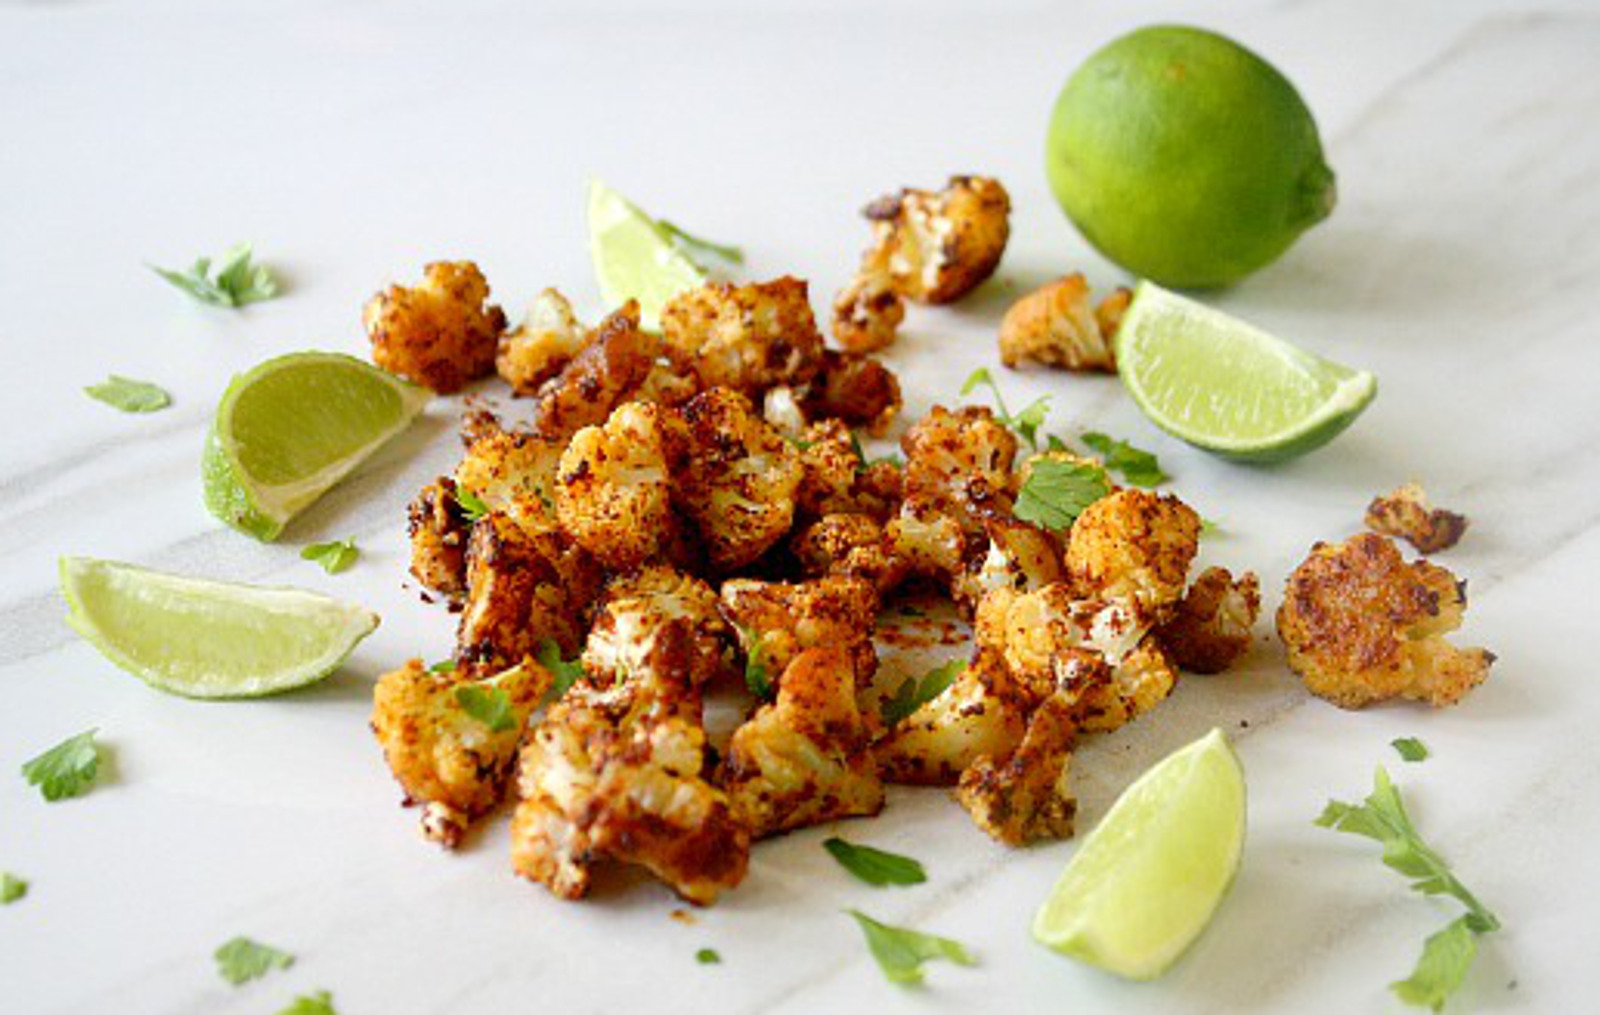 Roasted Cauliflower With Chipotle & Lime